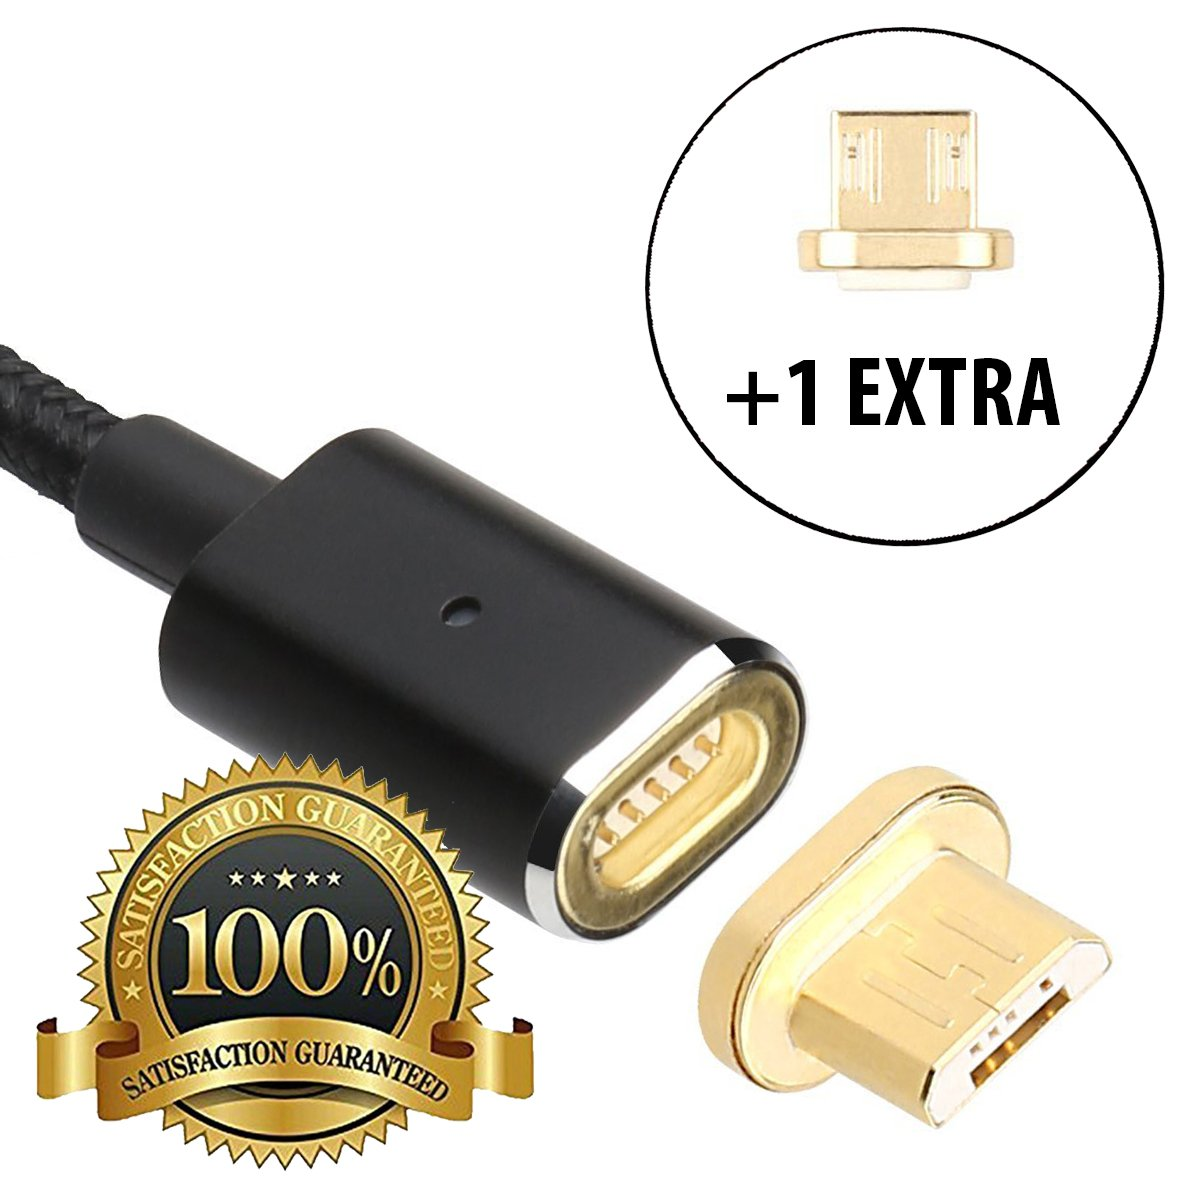 Amazon magnetic charging cable magnetic phone charger micro amazon magnetic charging cable magnetic phone charger micro usb charger cord fast charging cable android quick charger cord magnetic car greentooth Gallery